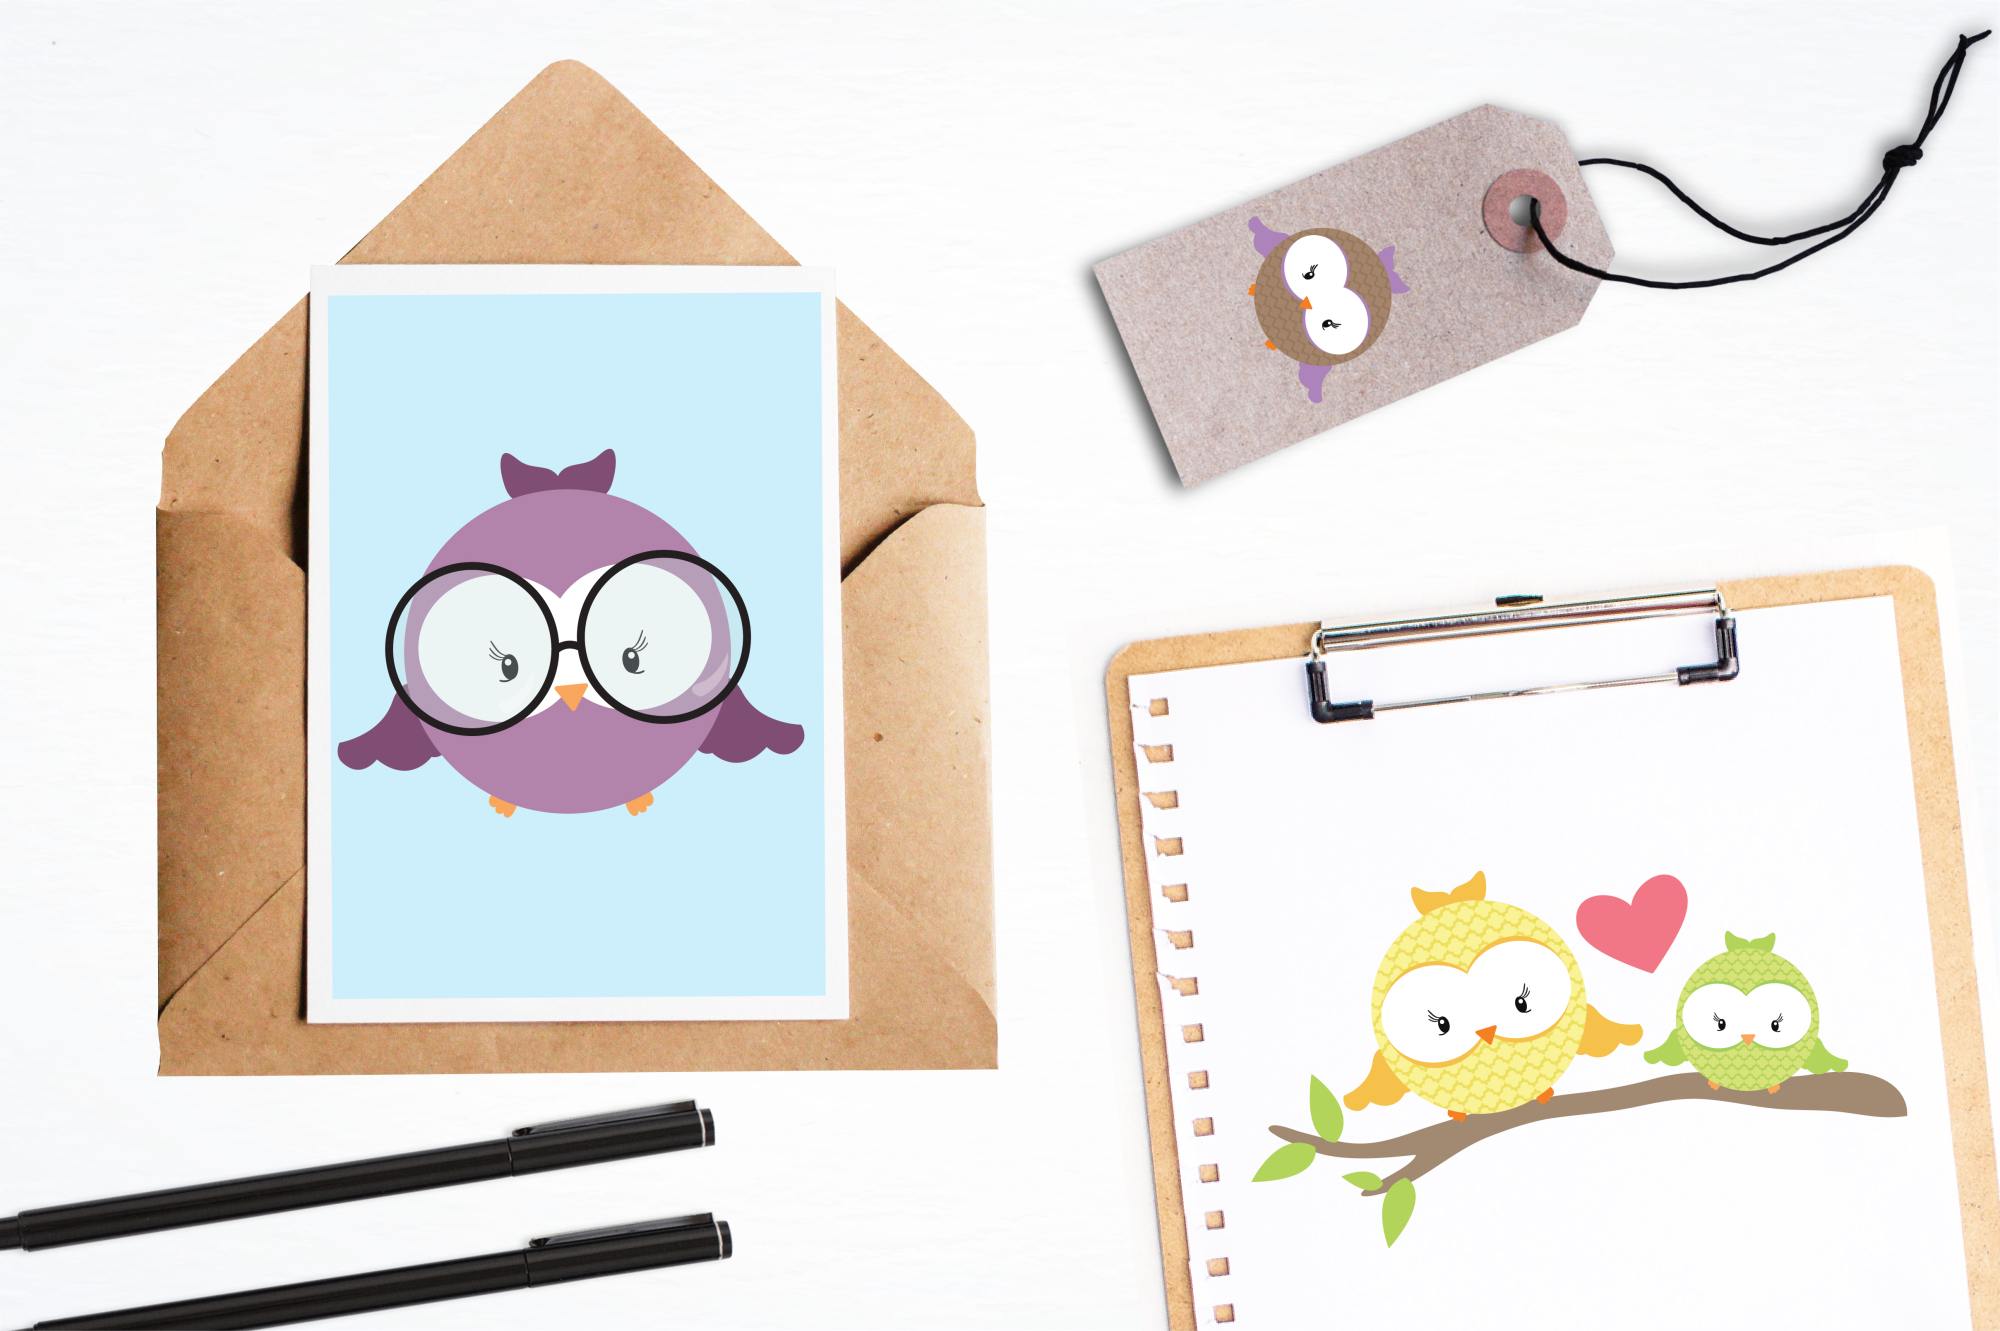 Hooties graphics and illustrations example image 4